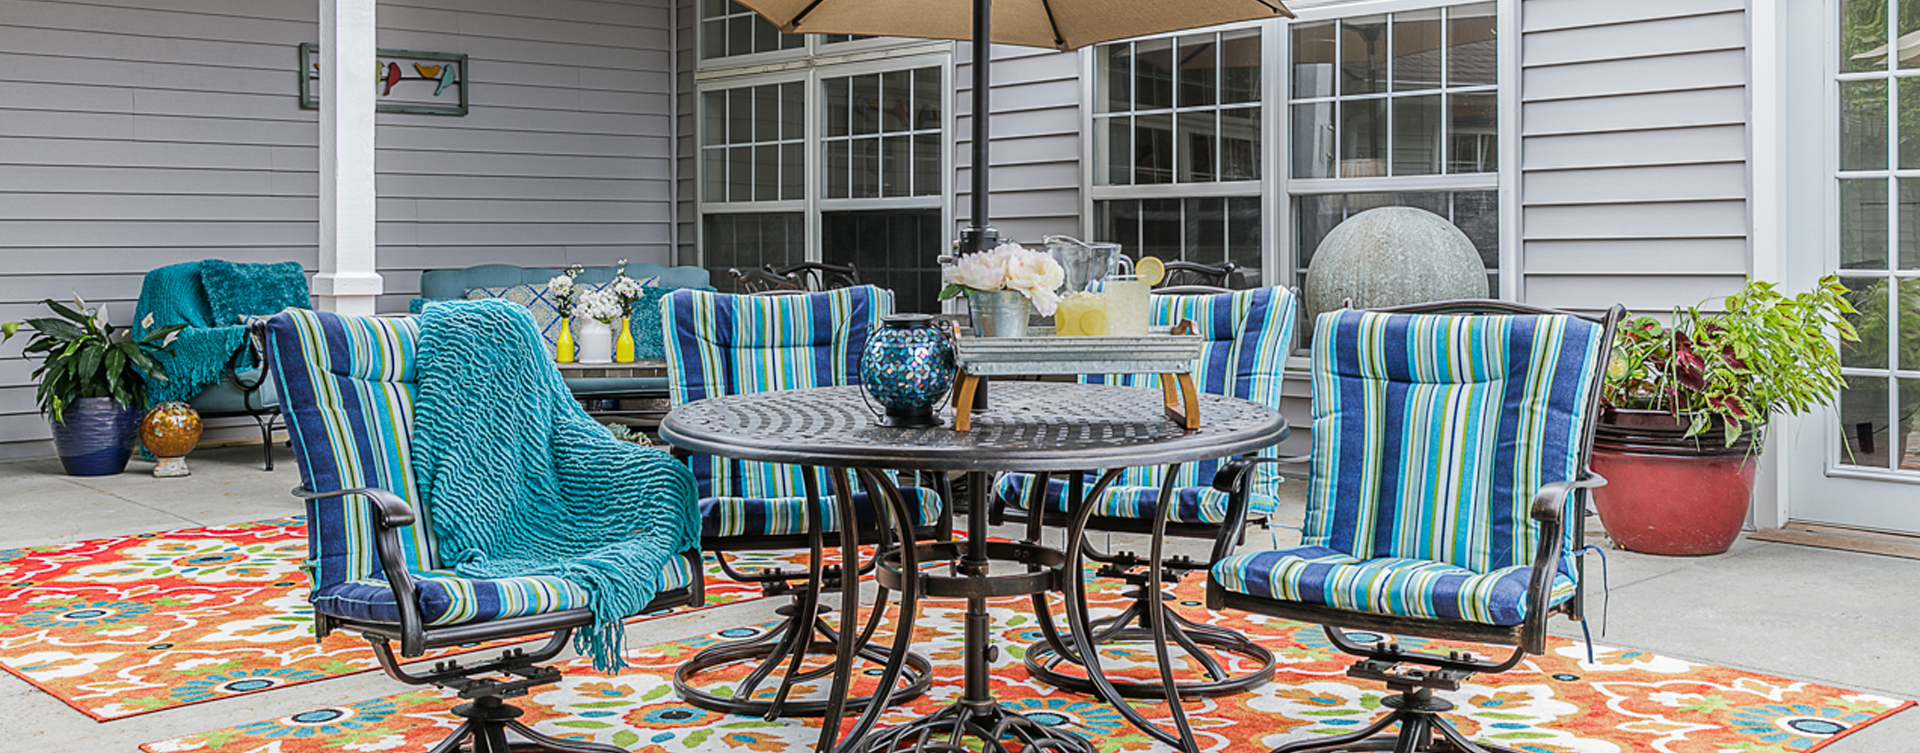 Feel like you're on your own back porch in our courtyard at Bickford of Omaha - Blondo